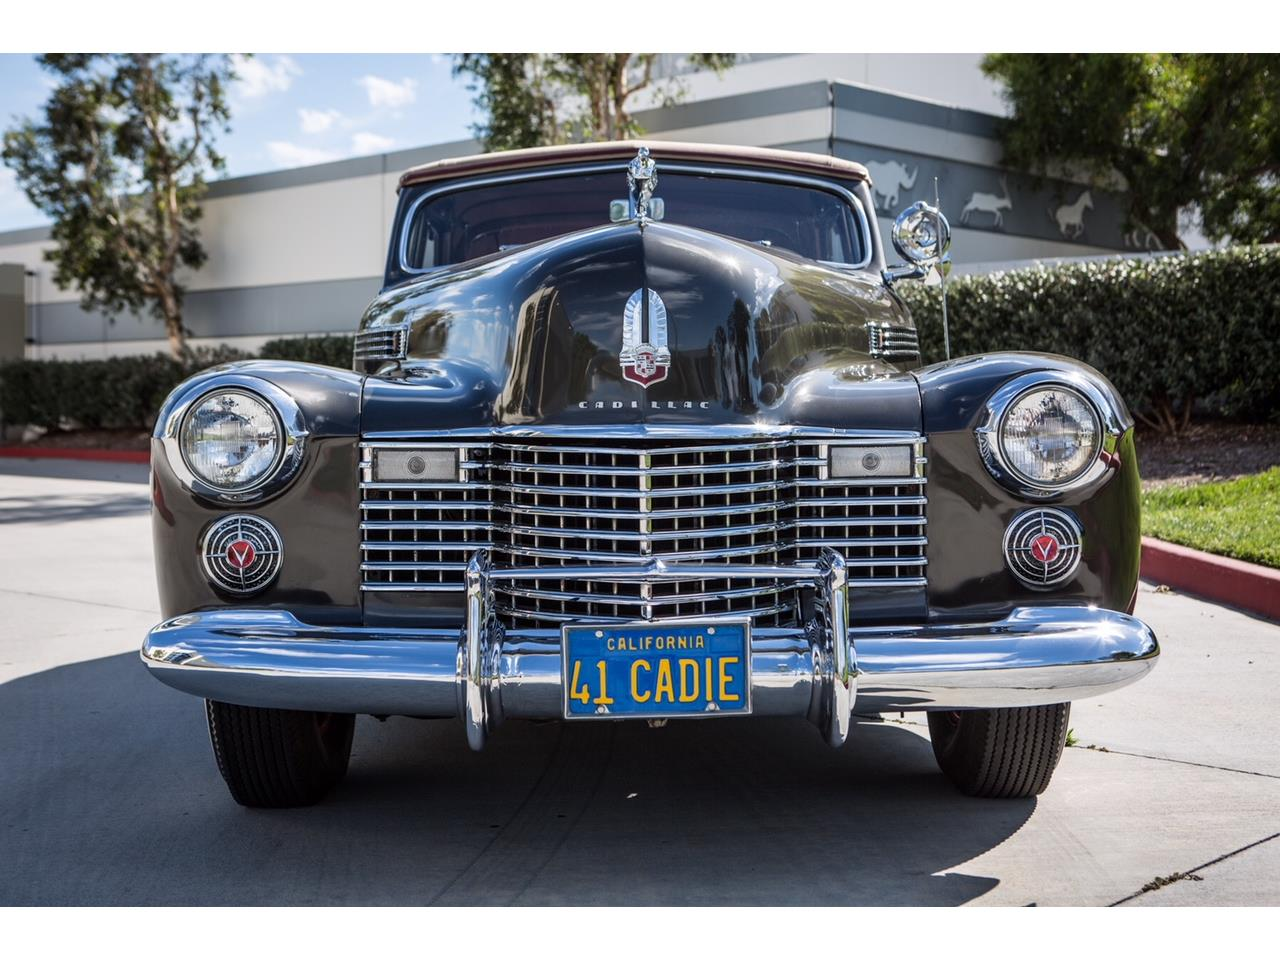 Large Picture of 1941 Cadillac Series 62 located in California - $88,000.00 Offered by a Private Seller - N67J